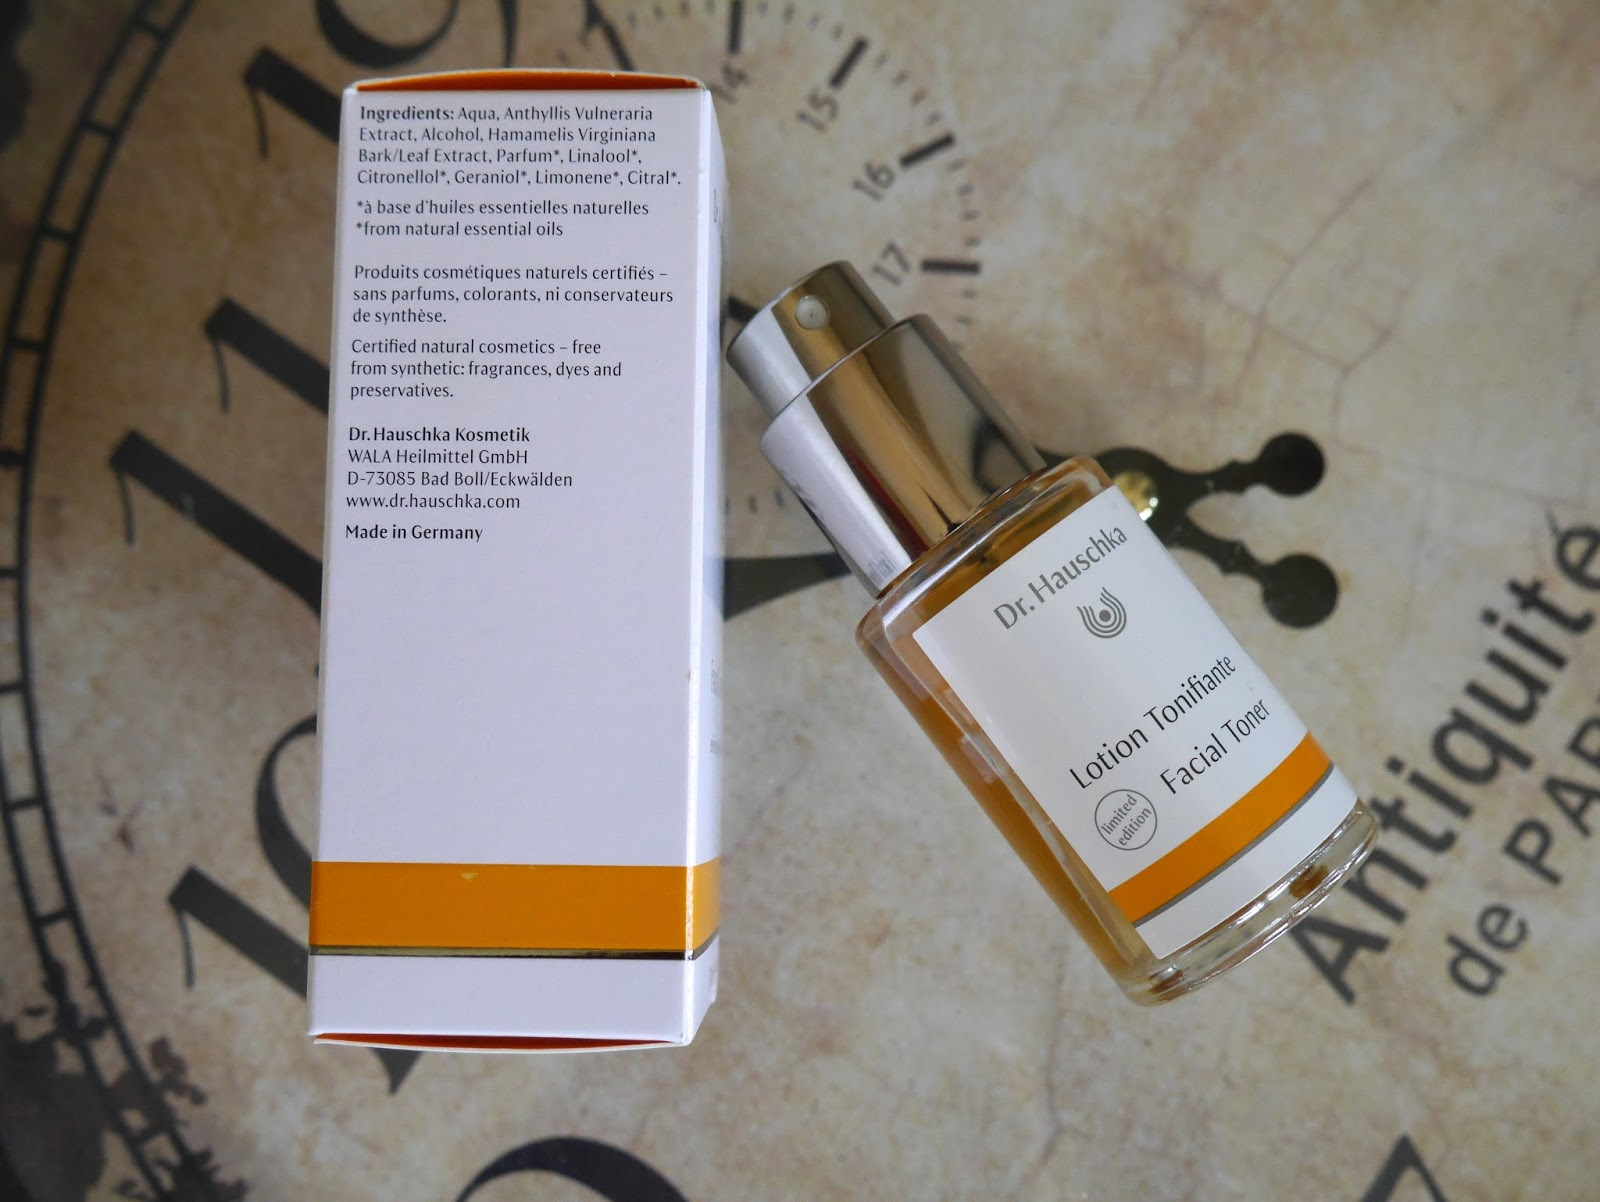 Dr. Hauschka Limited Edition